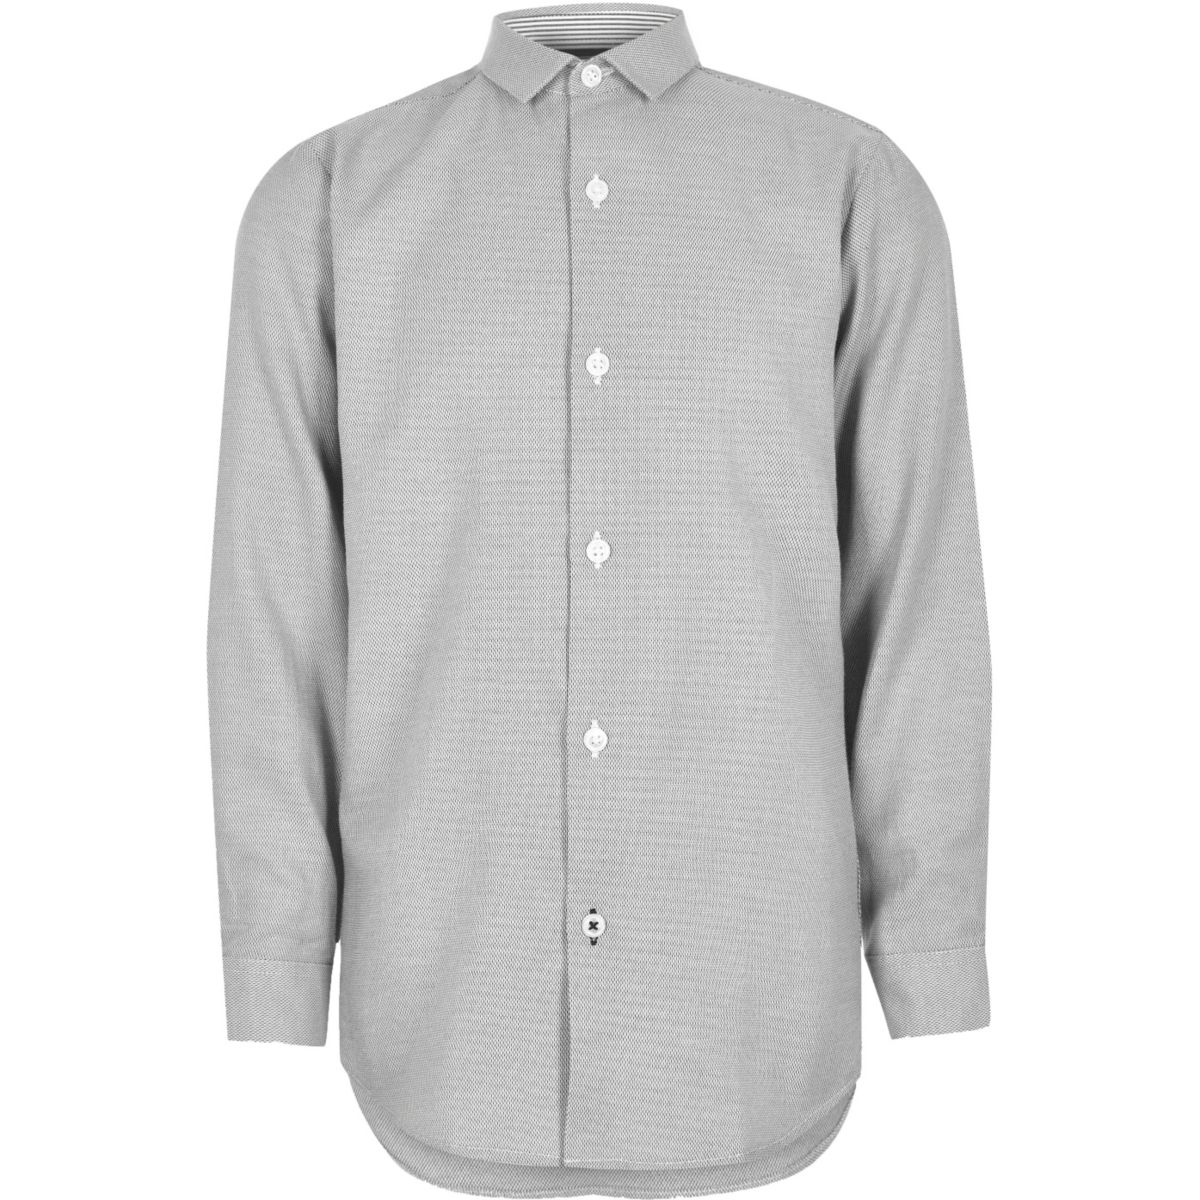 Boys grey textured smart shirt